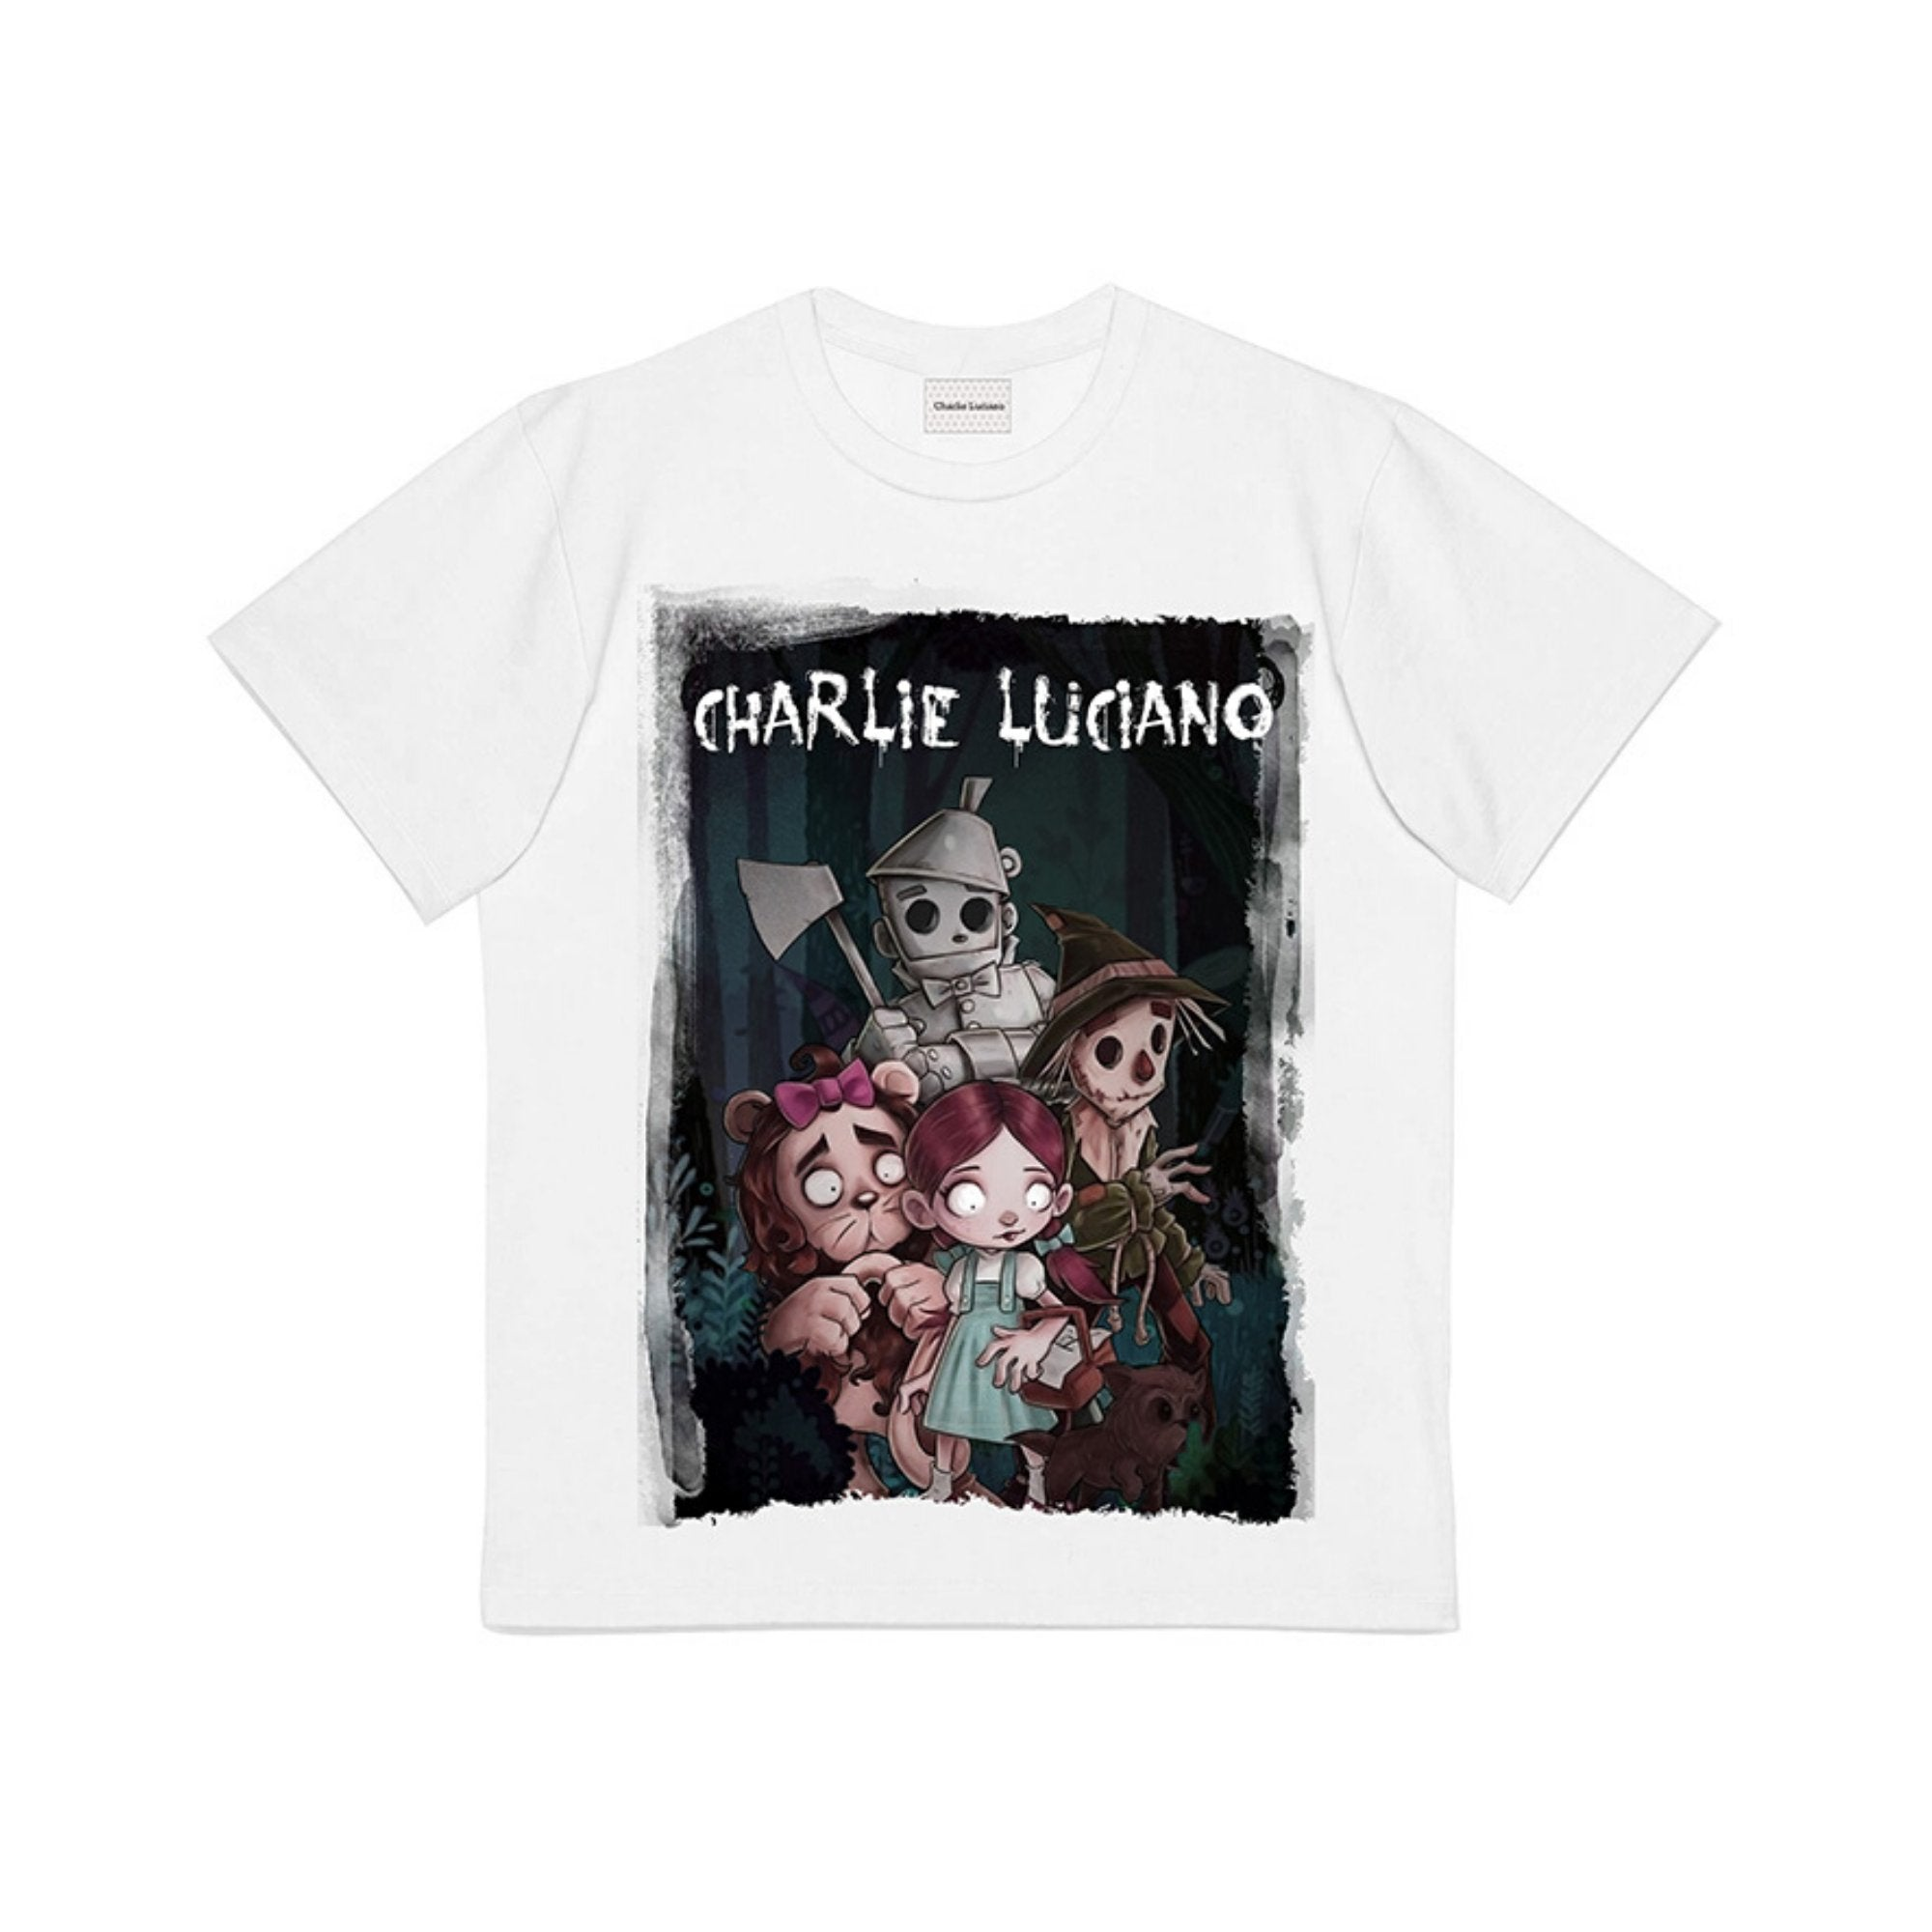 CHARLIE LUCIANO 'The Wonderful Wizard of Oz' Tee | MADA IN CHINA